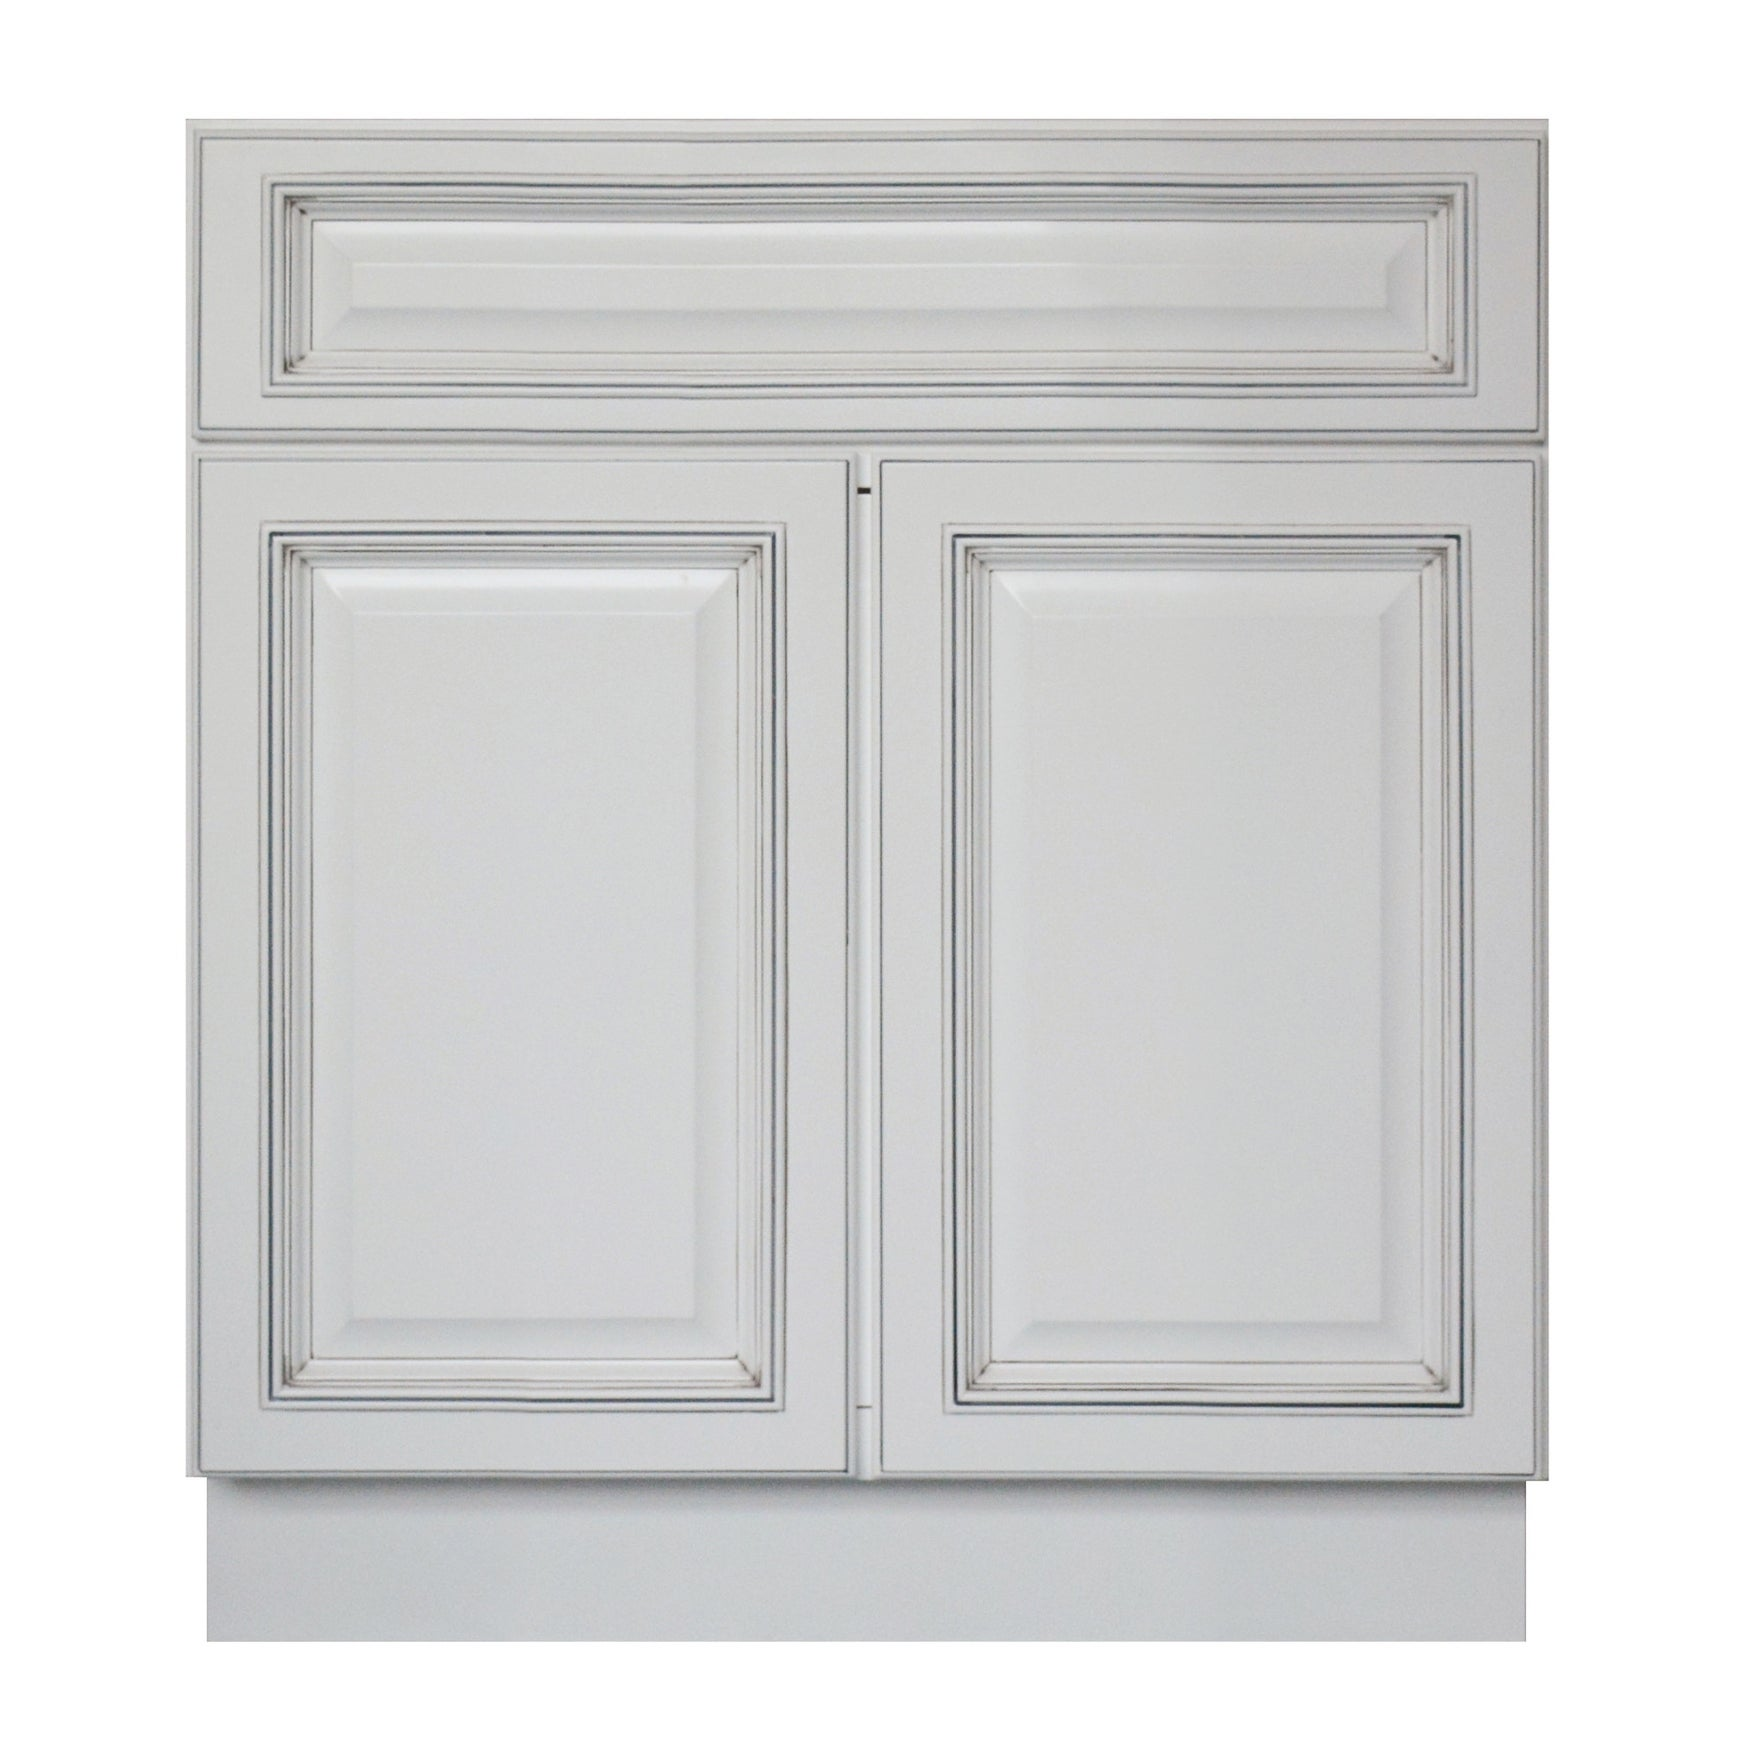 Buy Sunny Wood Kitchen Cabinets Online at Overstock   Our ...